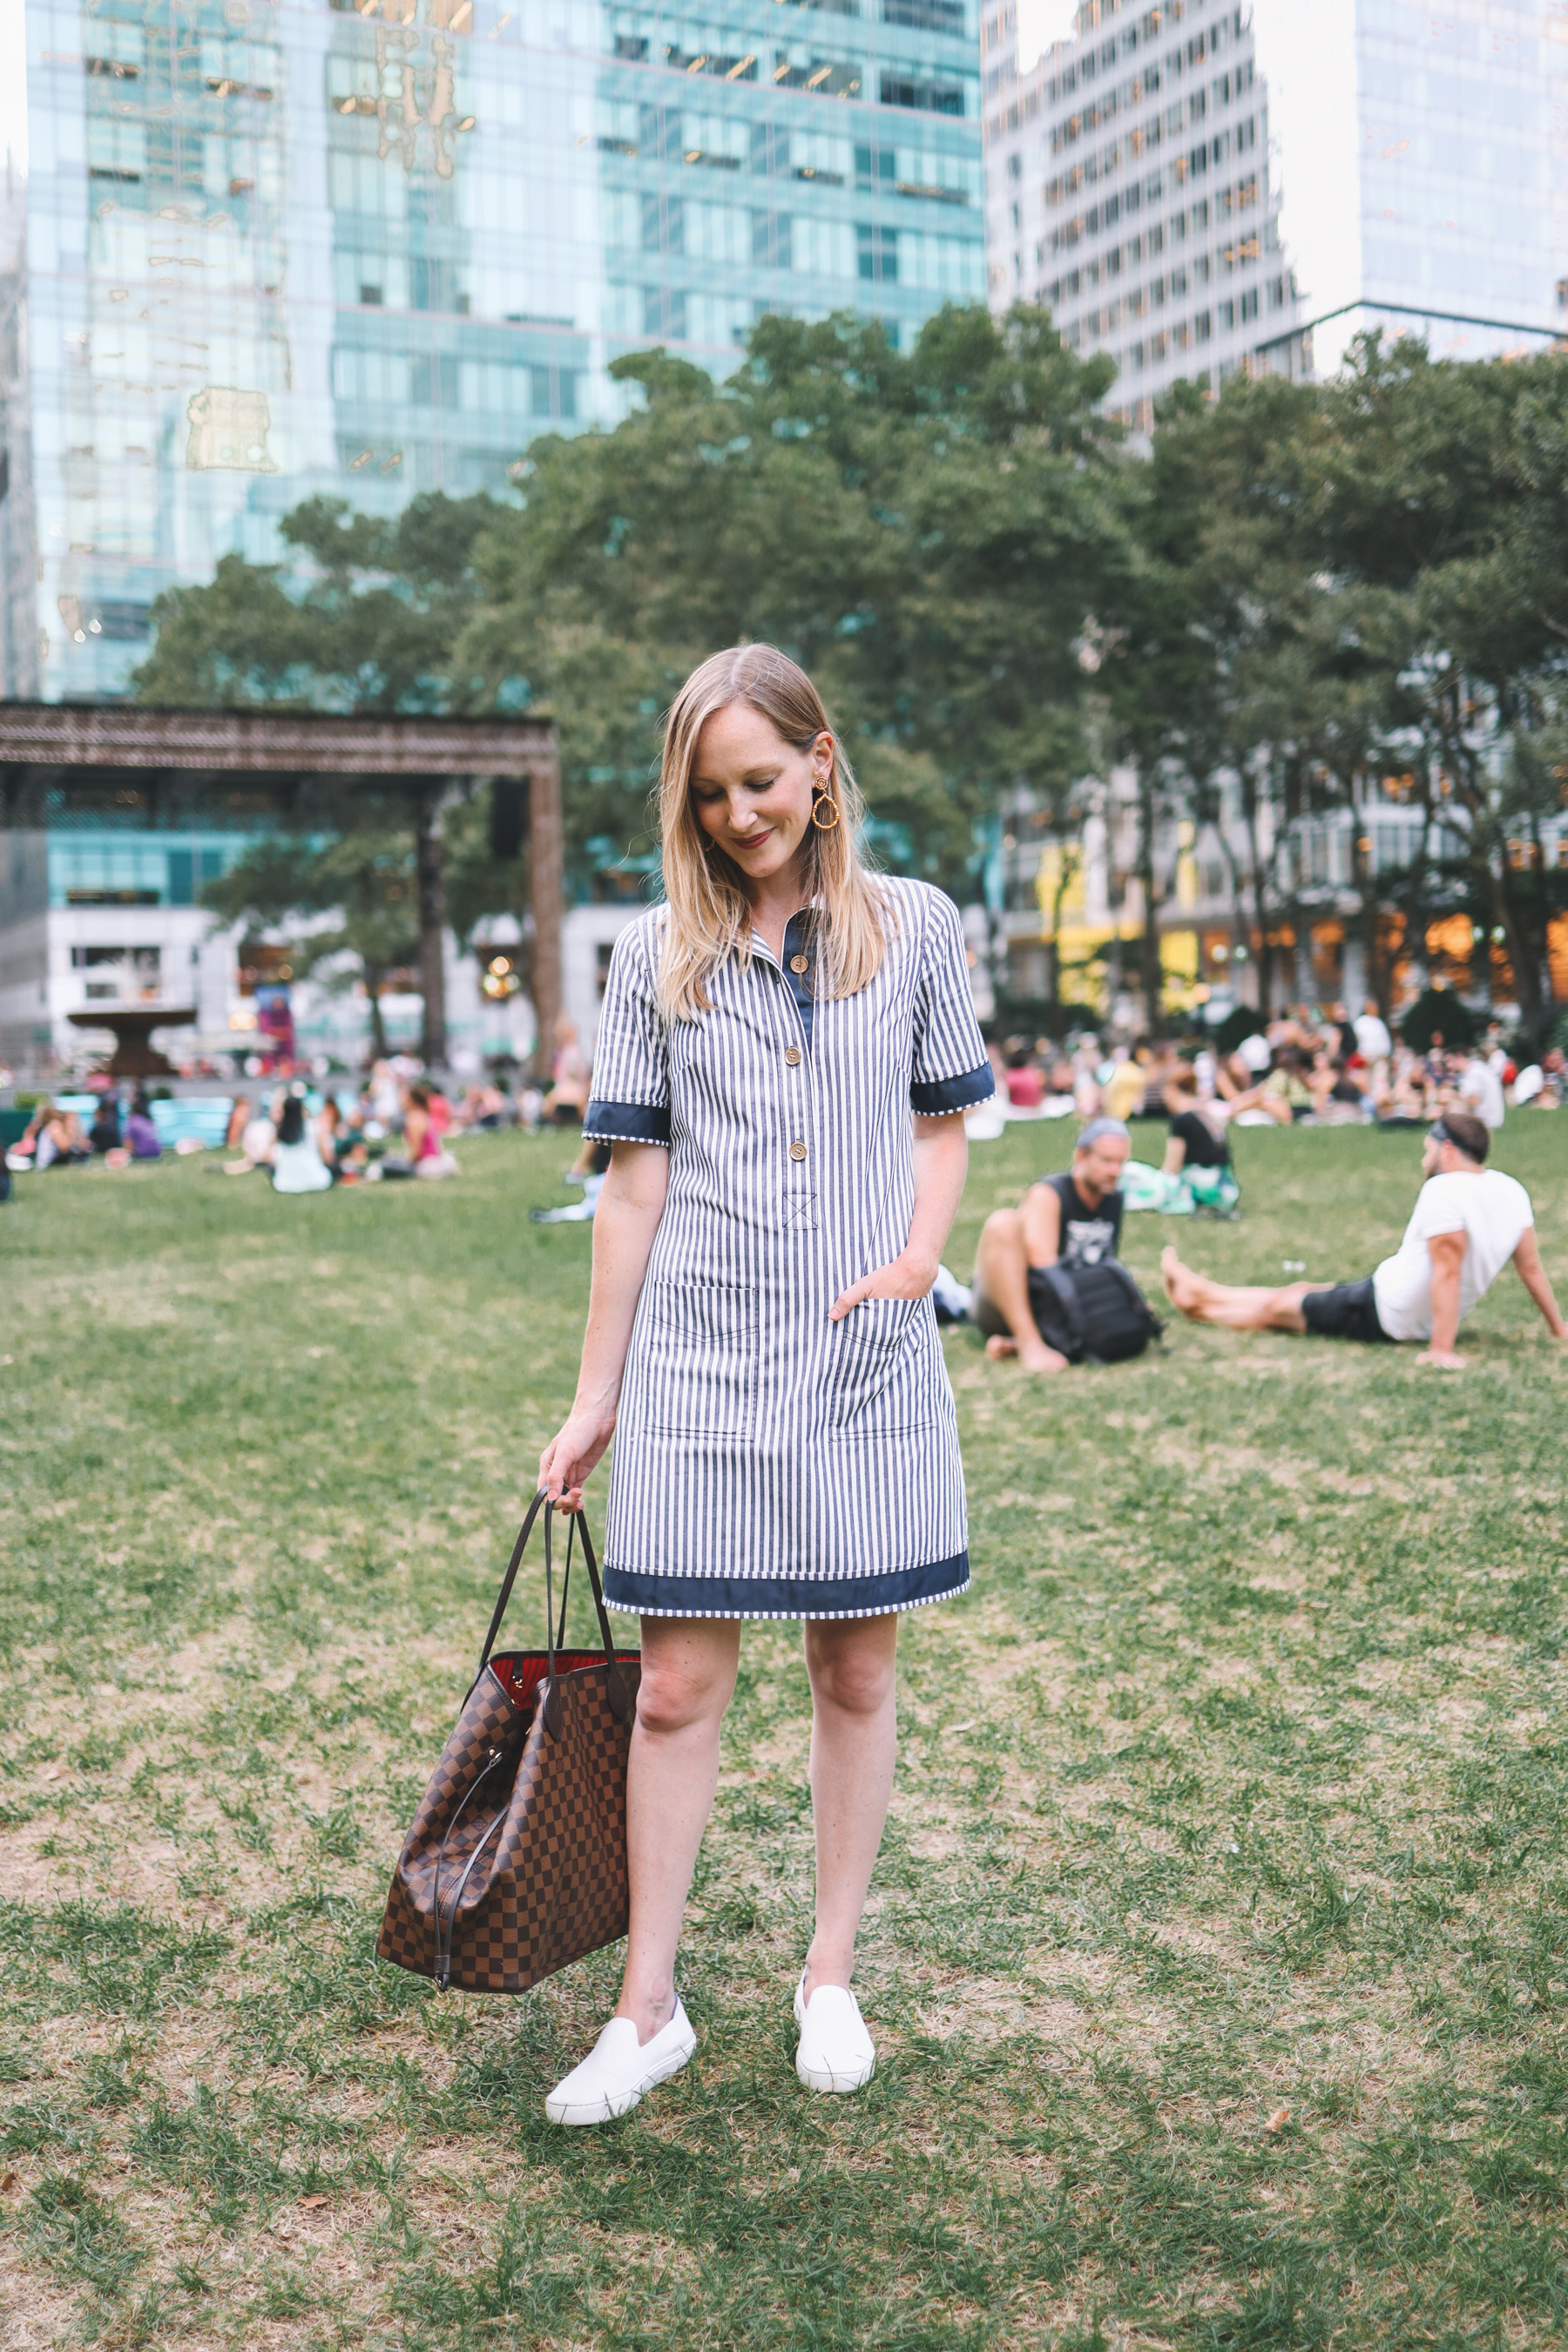 Kelly wearing a pin-stripped easy shirtdress in the city